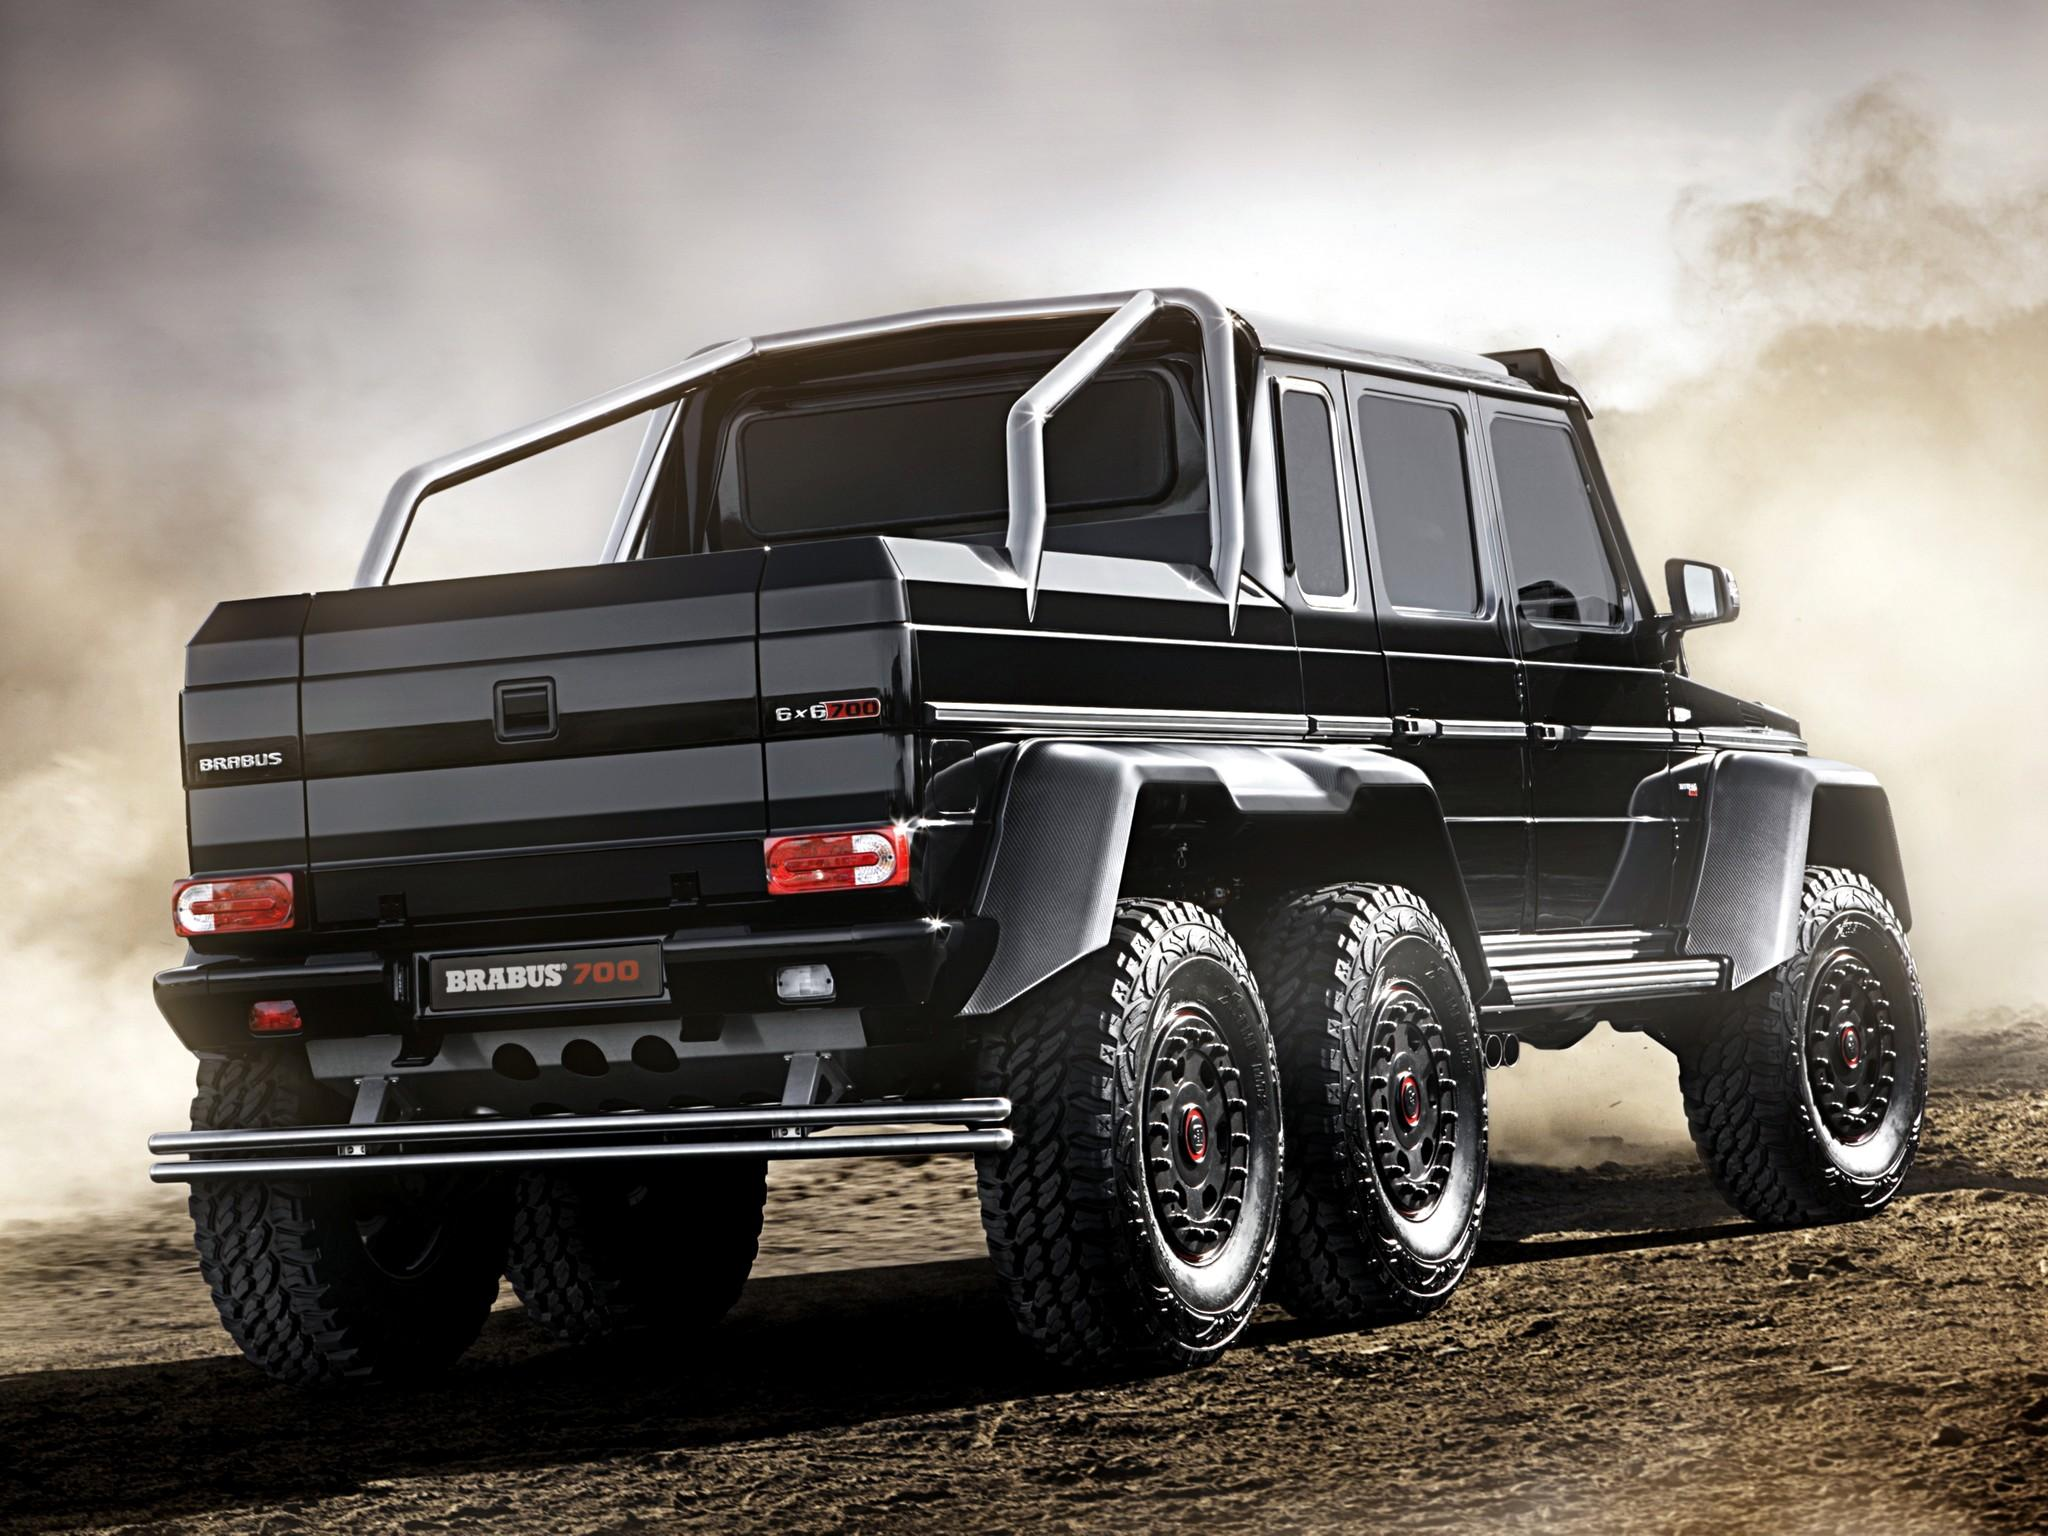 mercedes benz g63 amg 6x6 wallpaper hd download. Black Bedroom Furniture Sets. Home Design Ideas